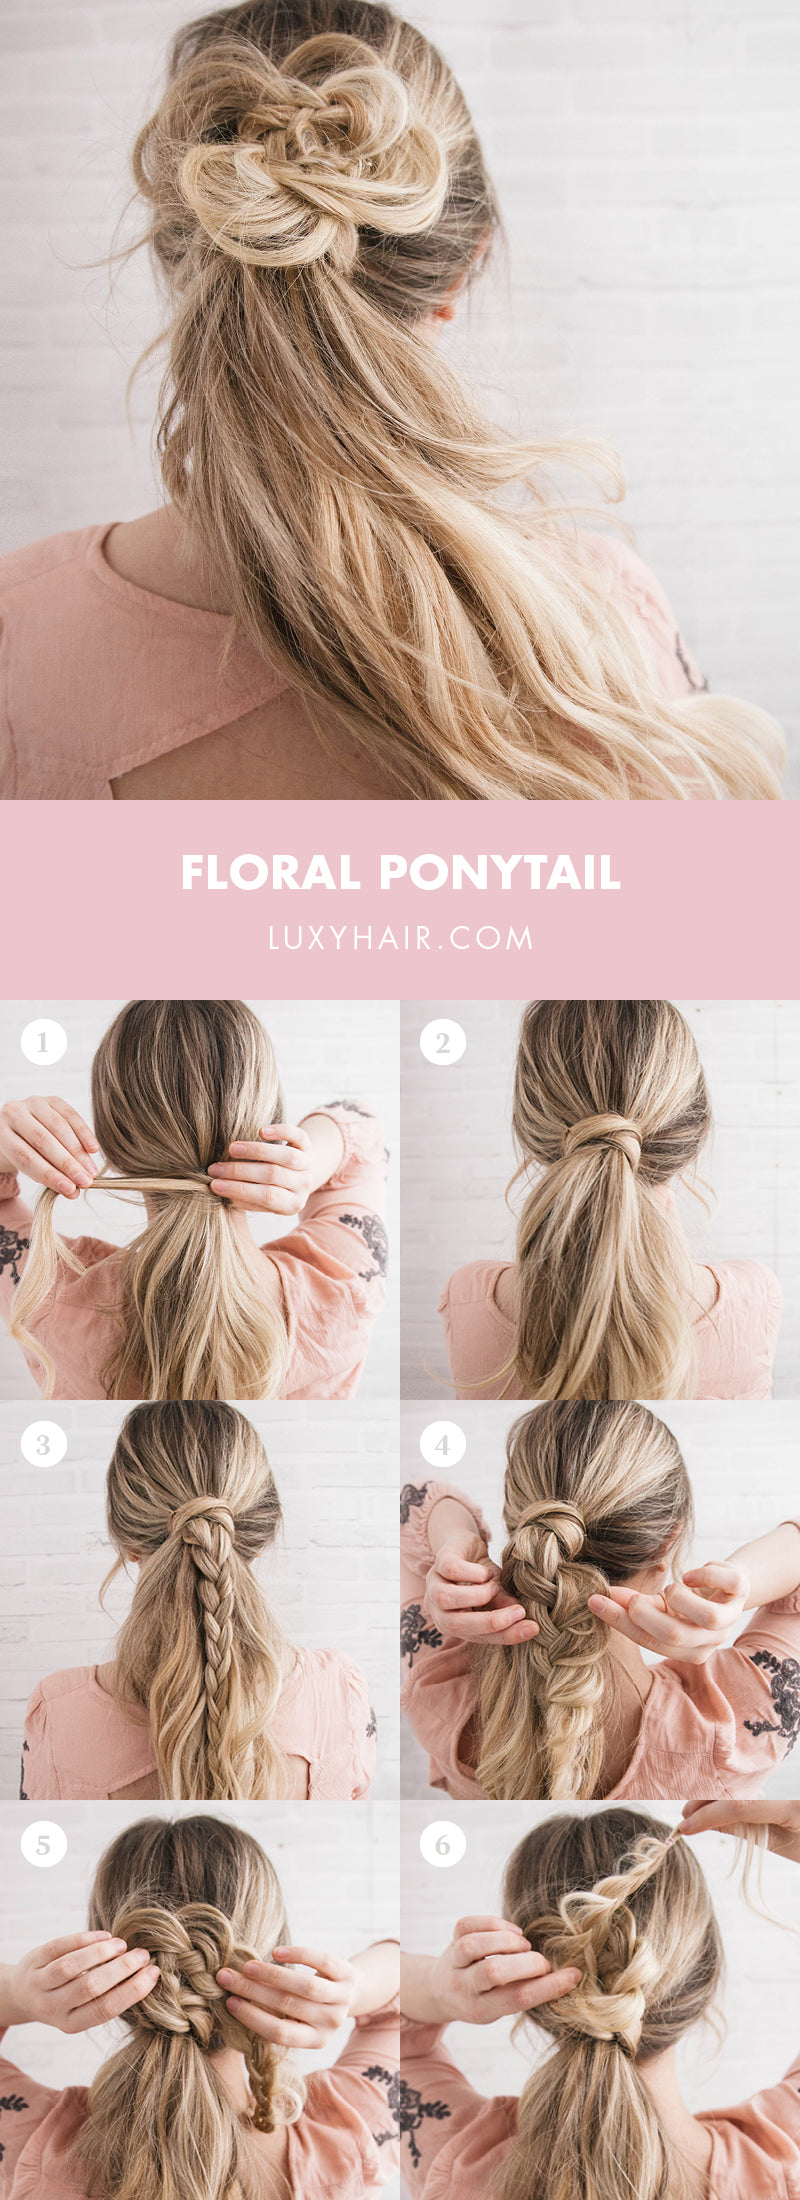 Prom Queen Worthy Hairstyles For 2019 Obsigen